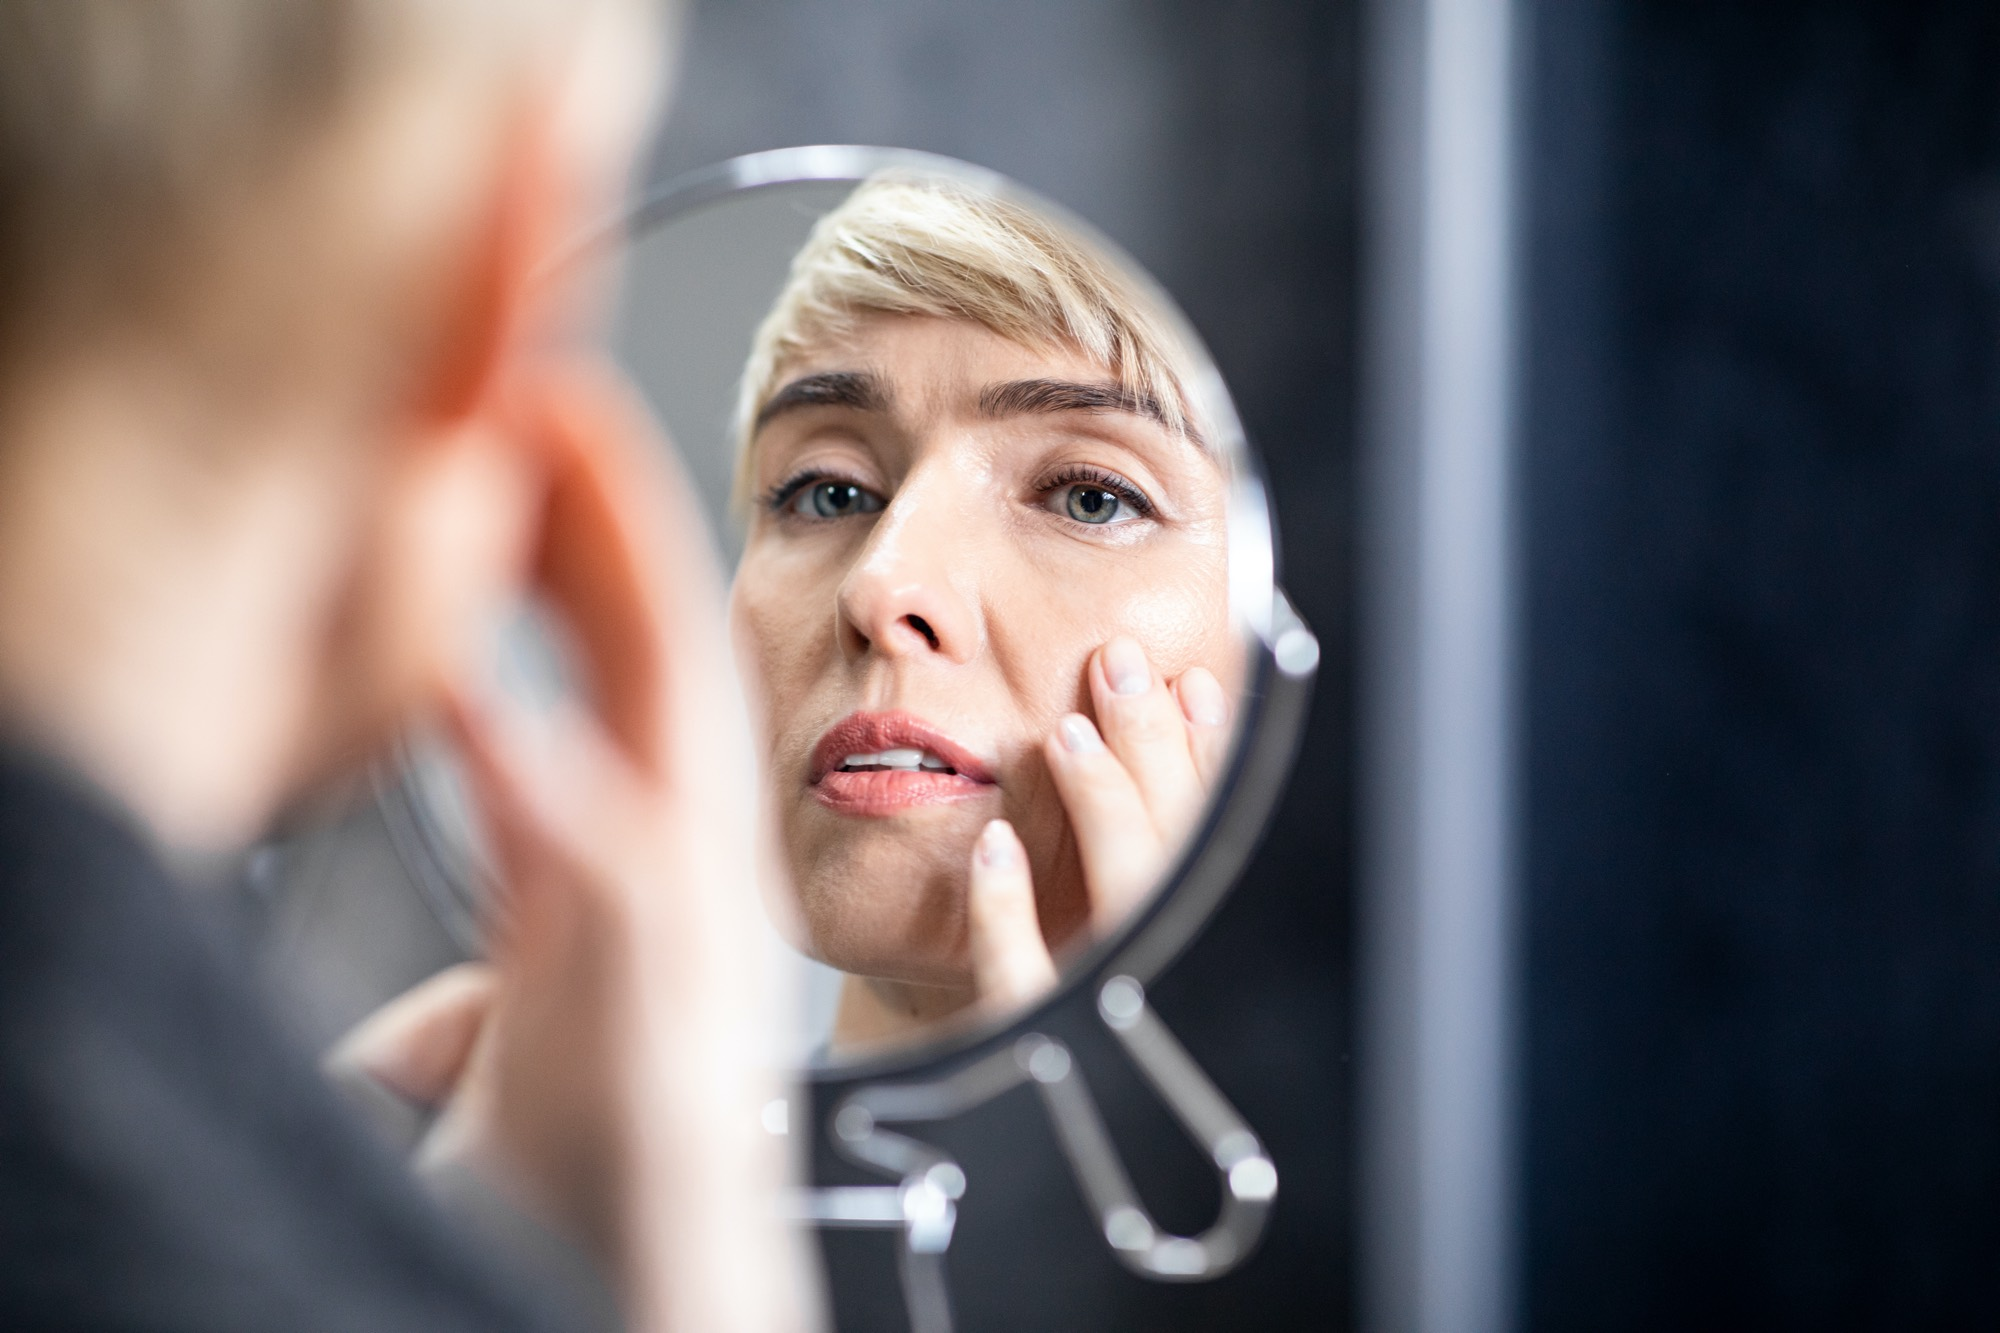 middle-aged-lady-looking-in-mirror-at-wrinkles